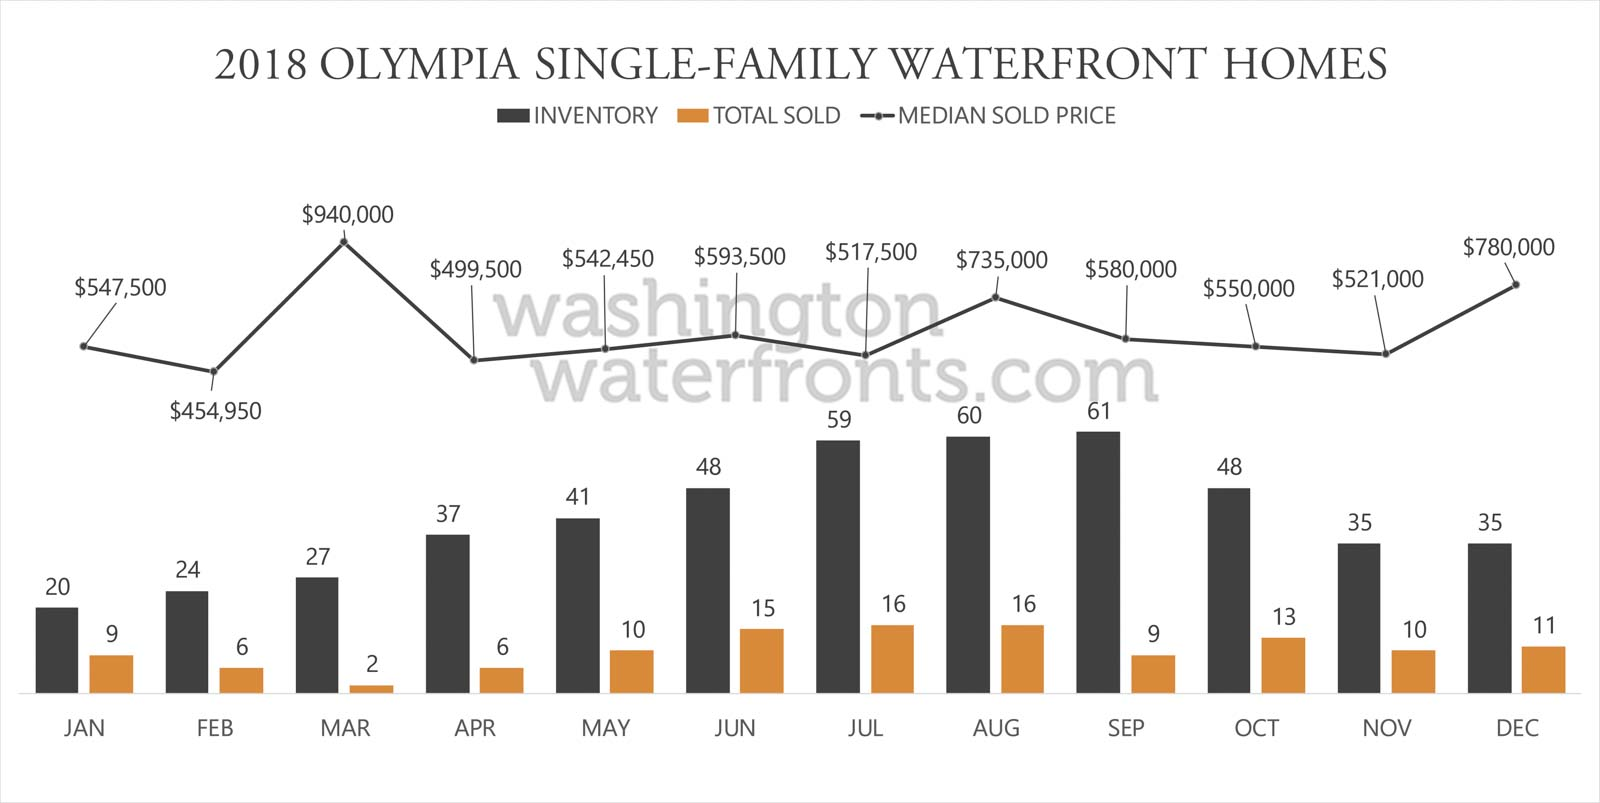 Olympia Waterfront Inventory